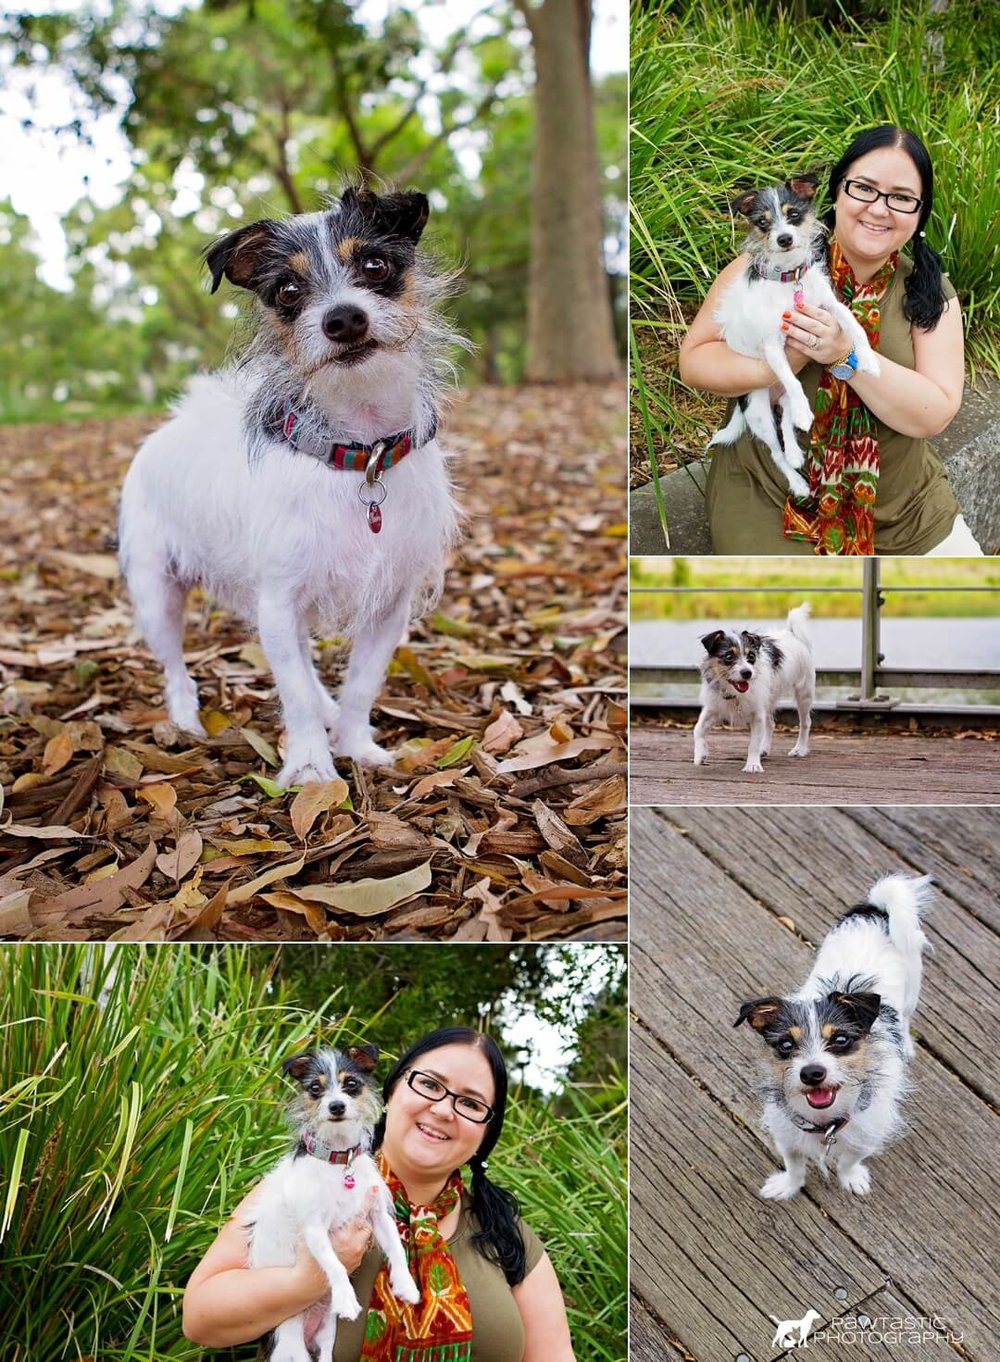 See a shorter pet photography session with Pawtastic Photography, featuring Blossom. A cute and scruffy dog playing in Sydney Park.